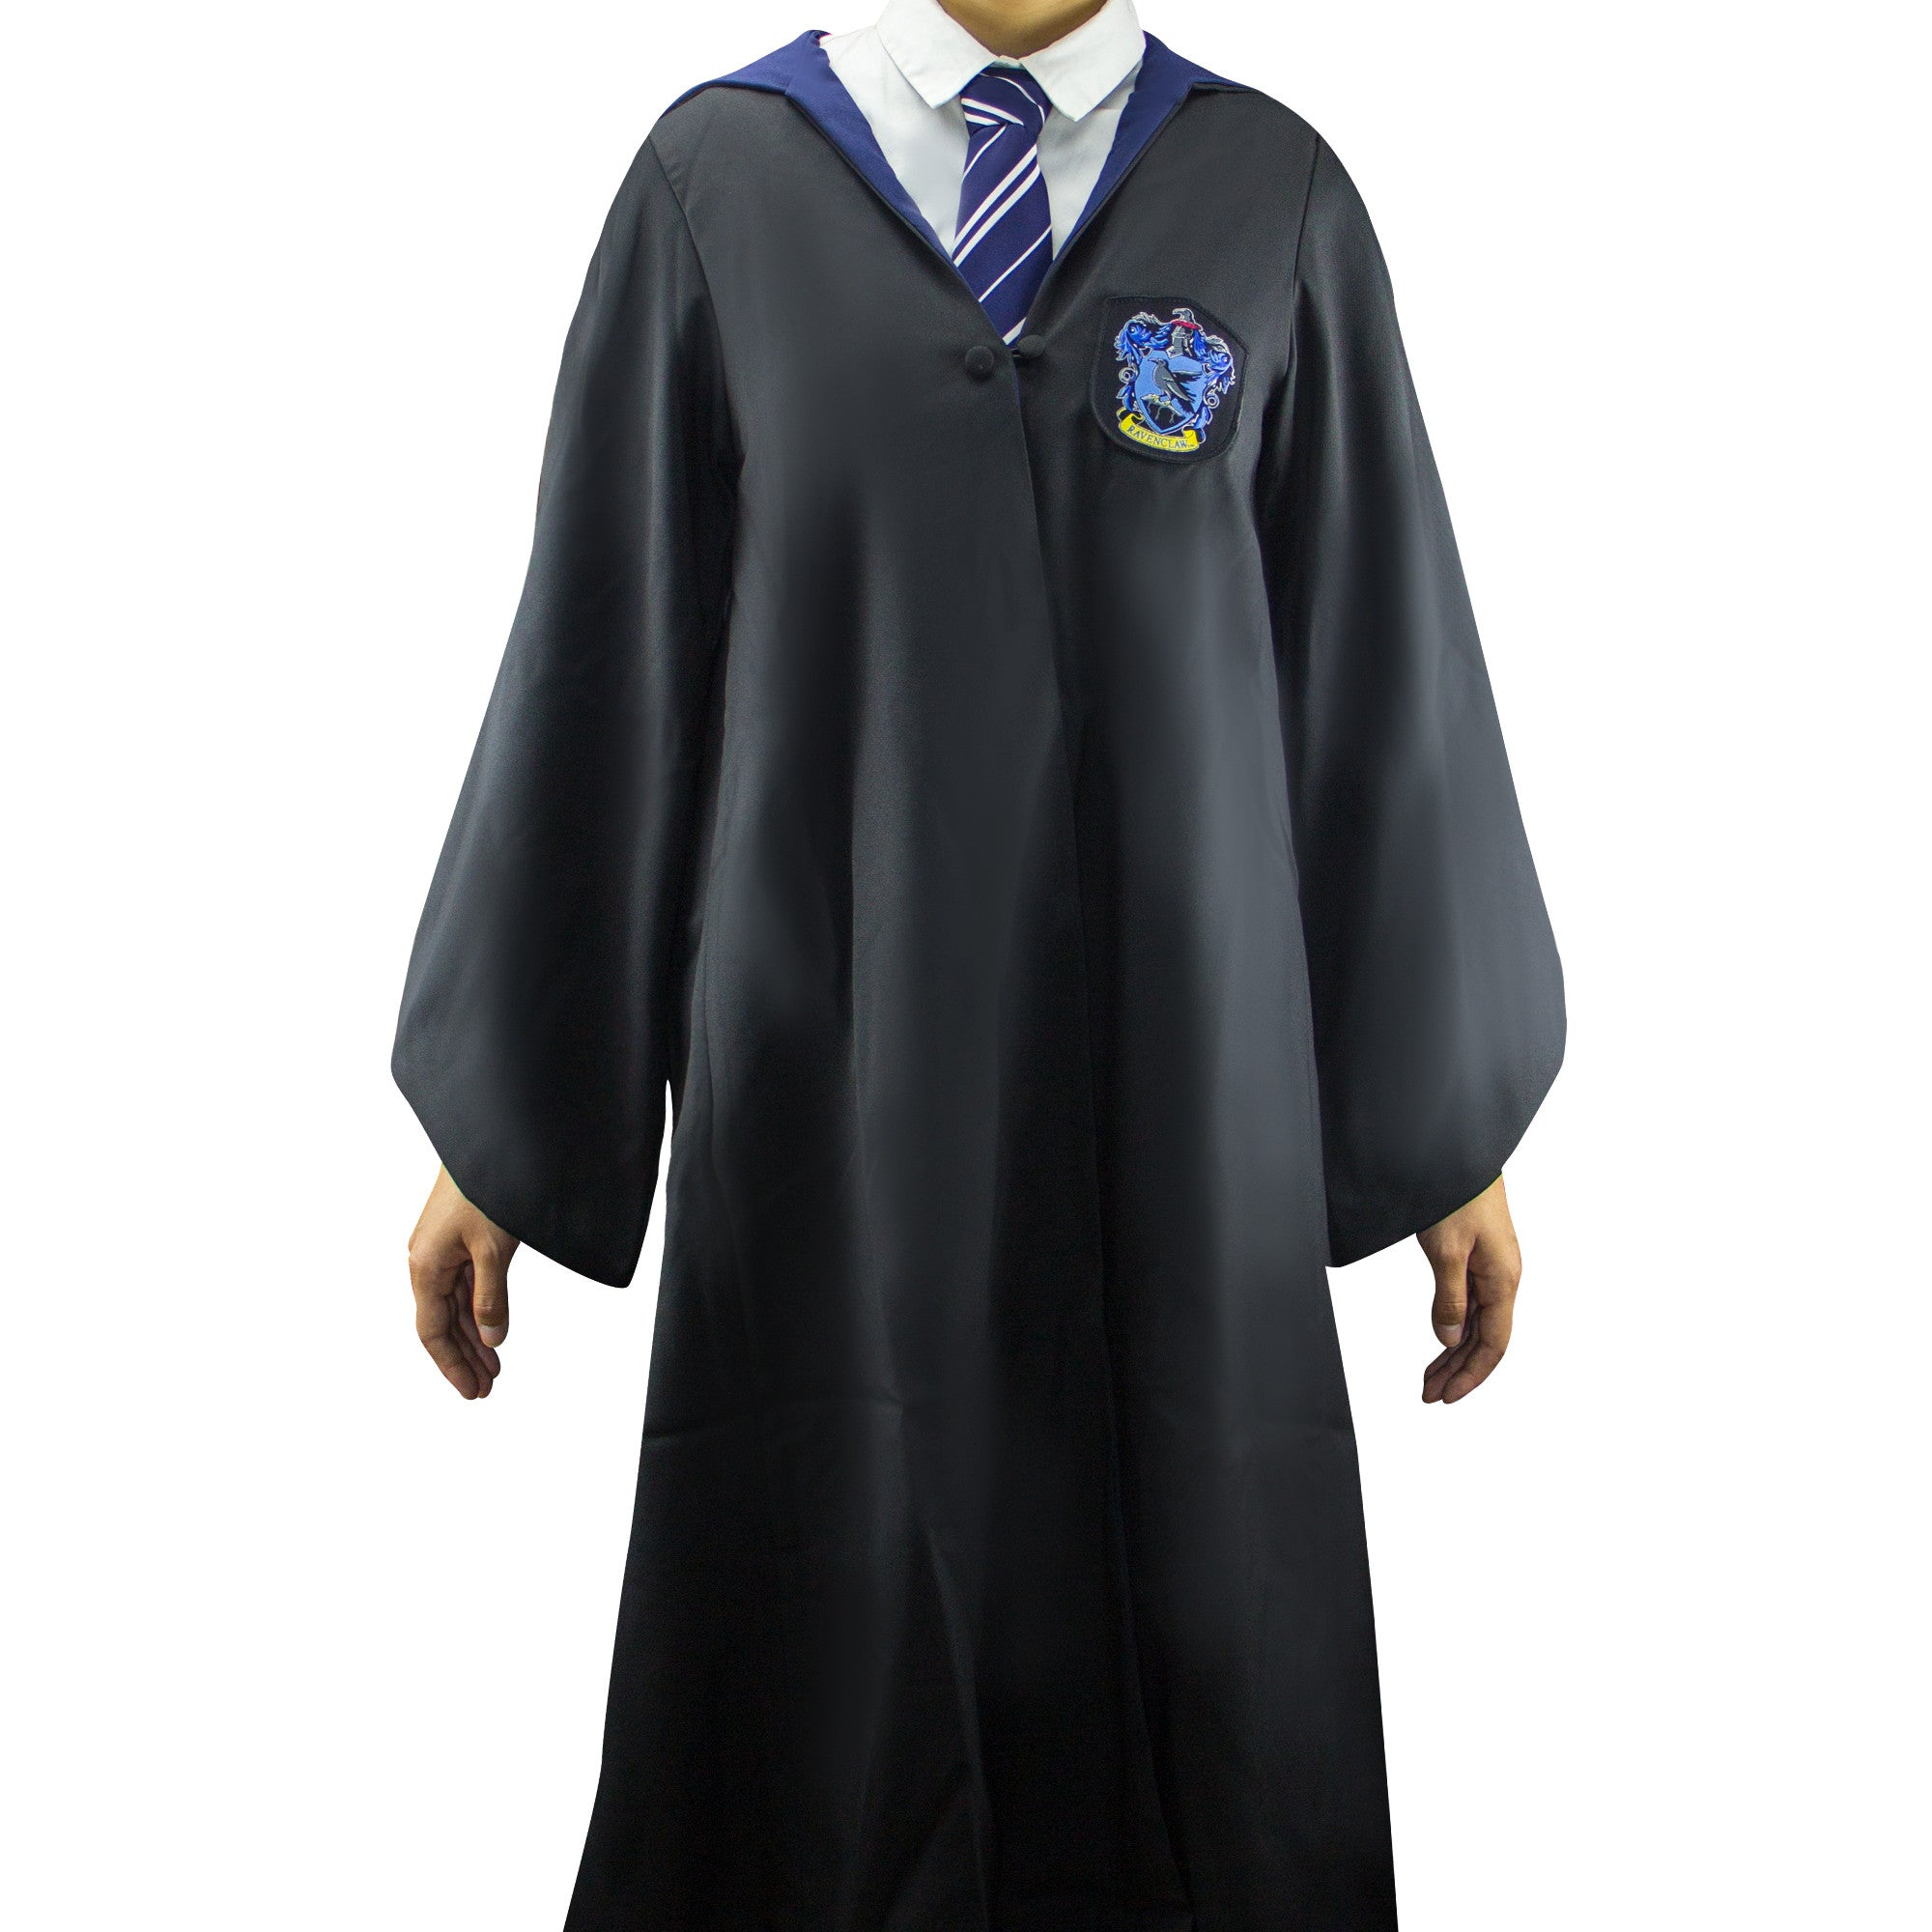 Robe de Sorcier Harry Potter - Serdaigle Adultes   Cinereplicas ... 879918f454a